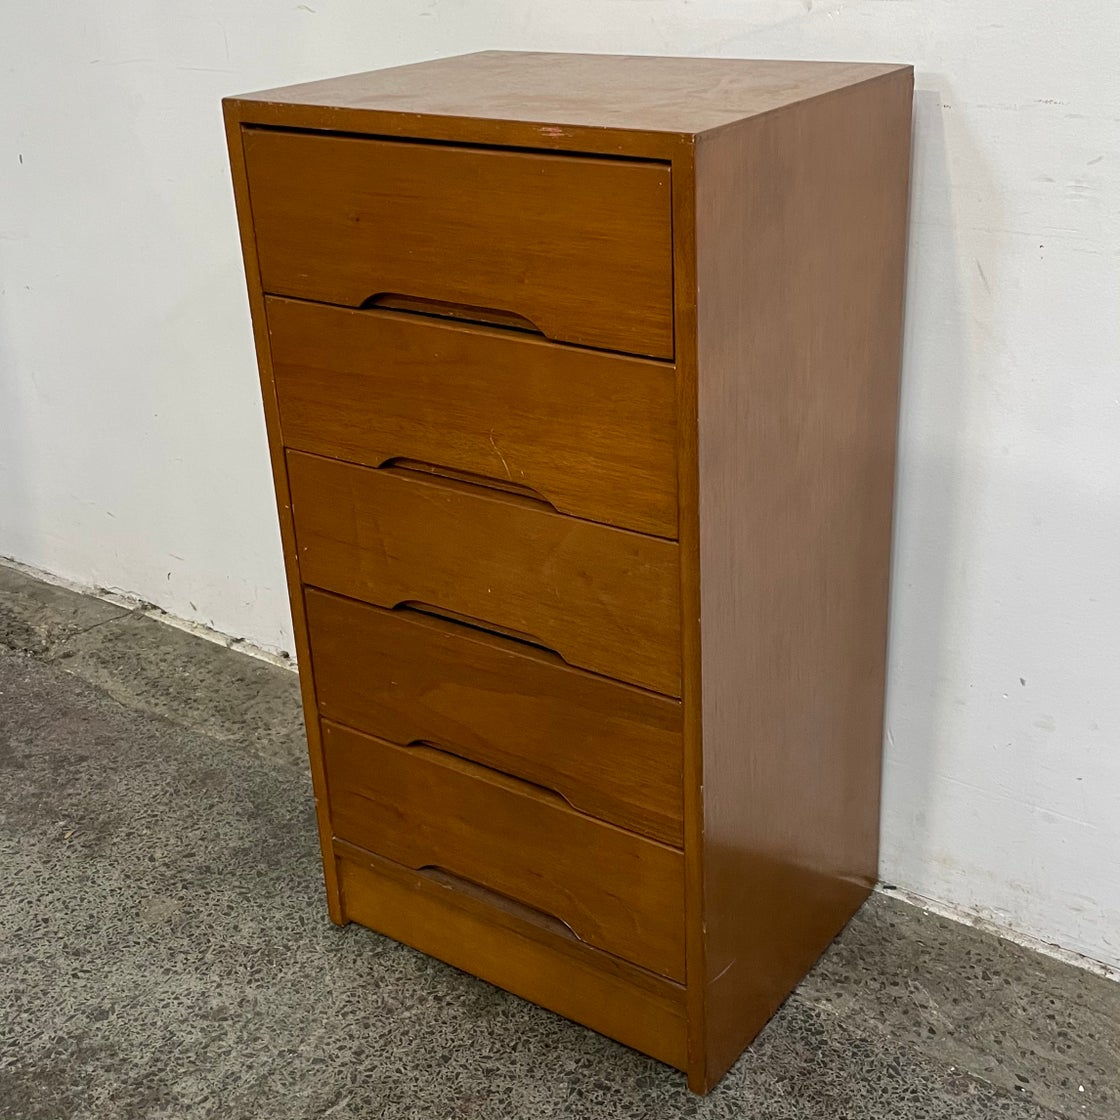 Image of COMPACT 1960s CHEST